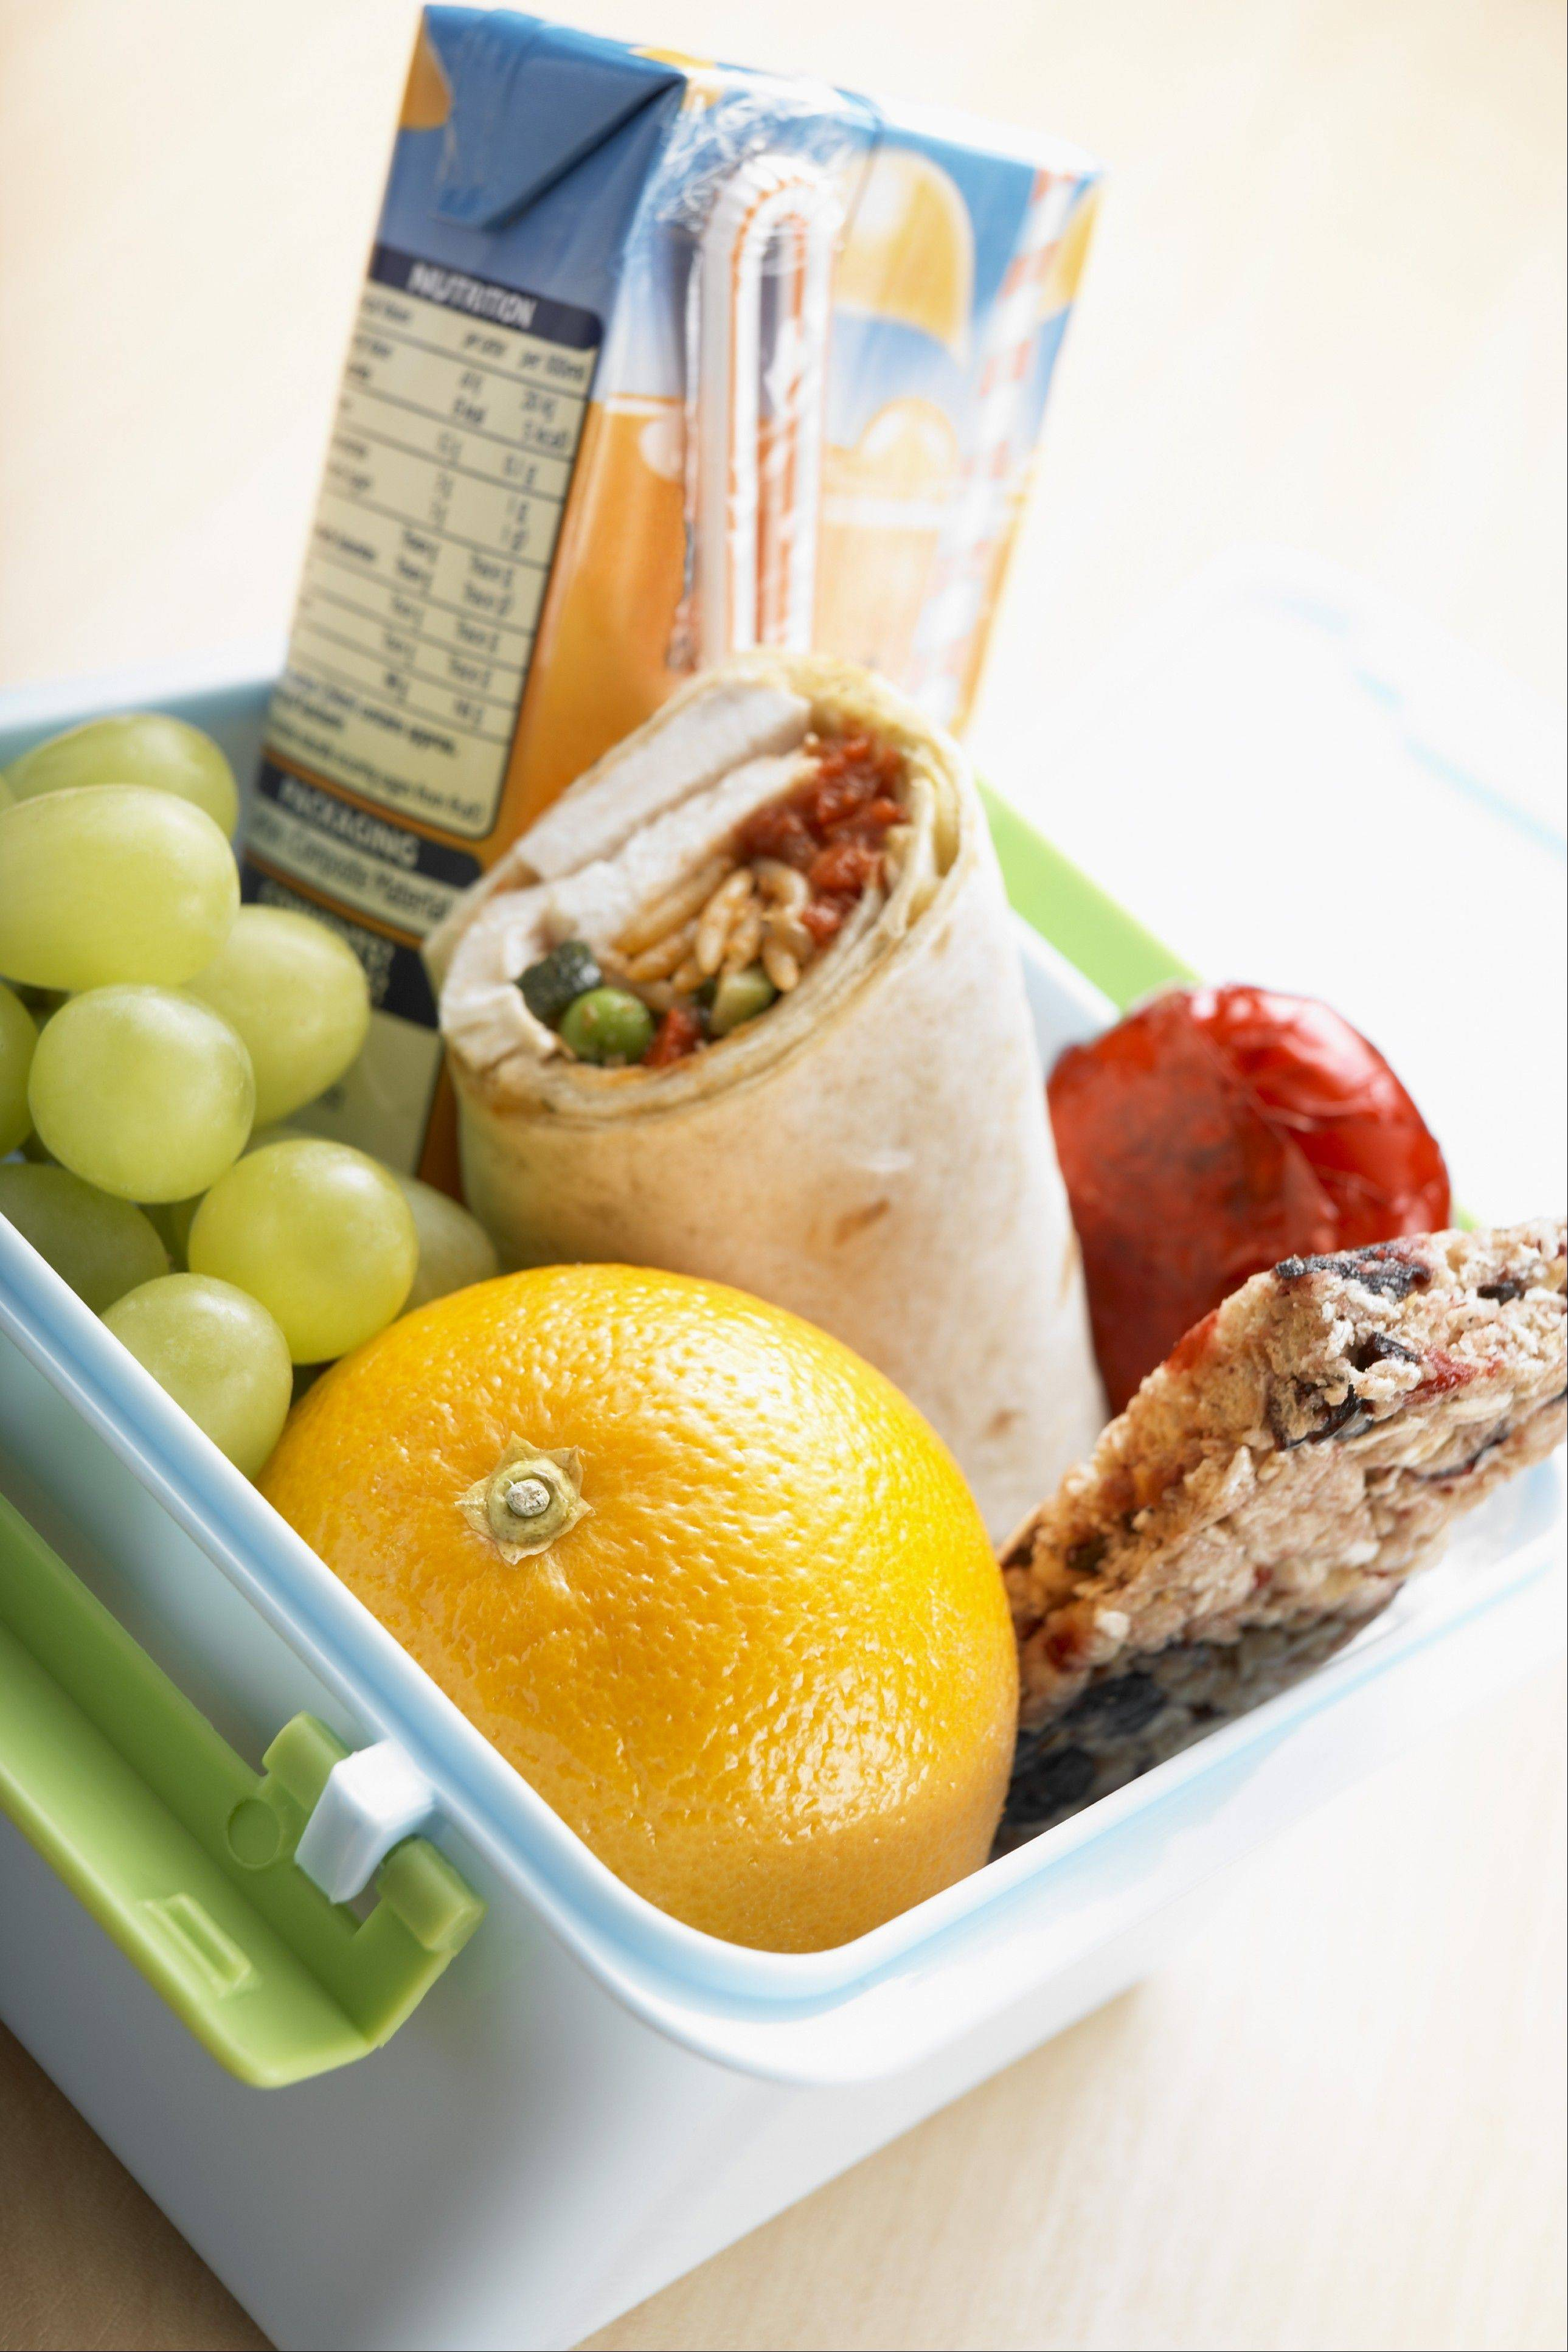 Packing healthy foods can help teach your children to make food choices that are good for them.